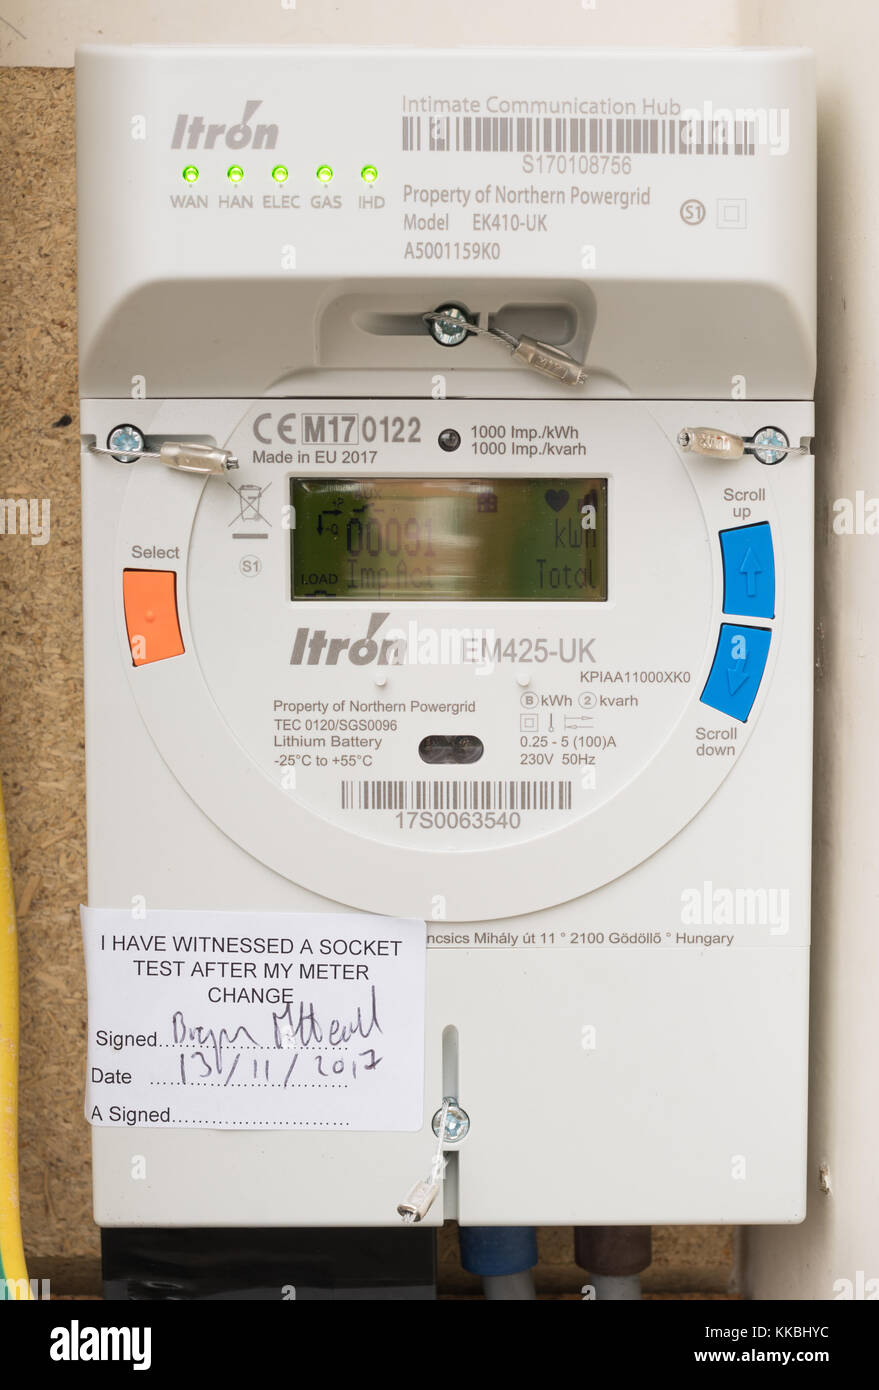 Northern Powergrid Itron smart electric meter with an